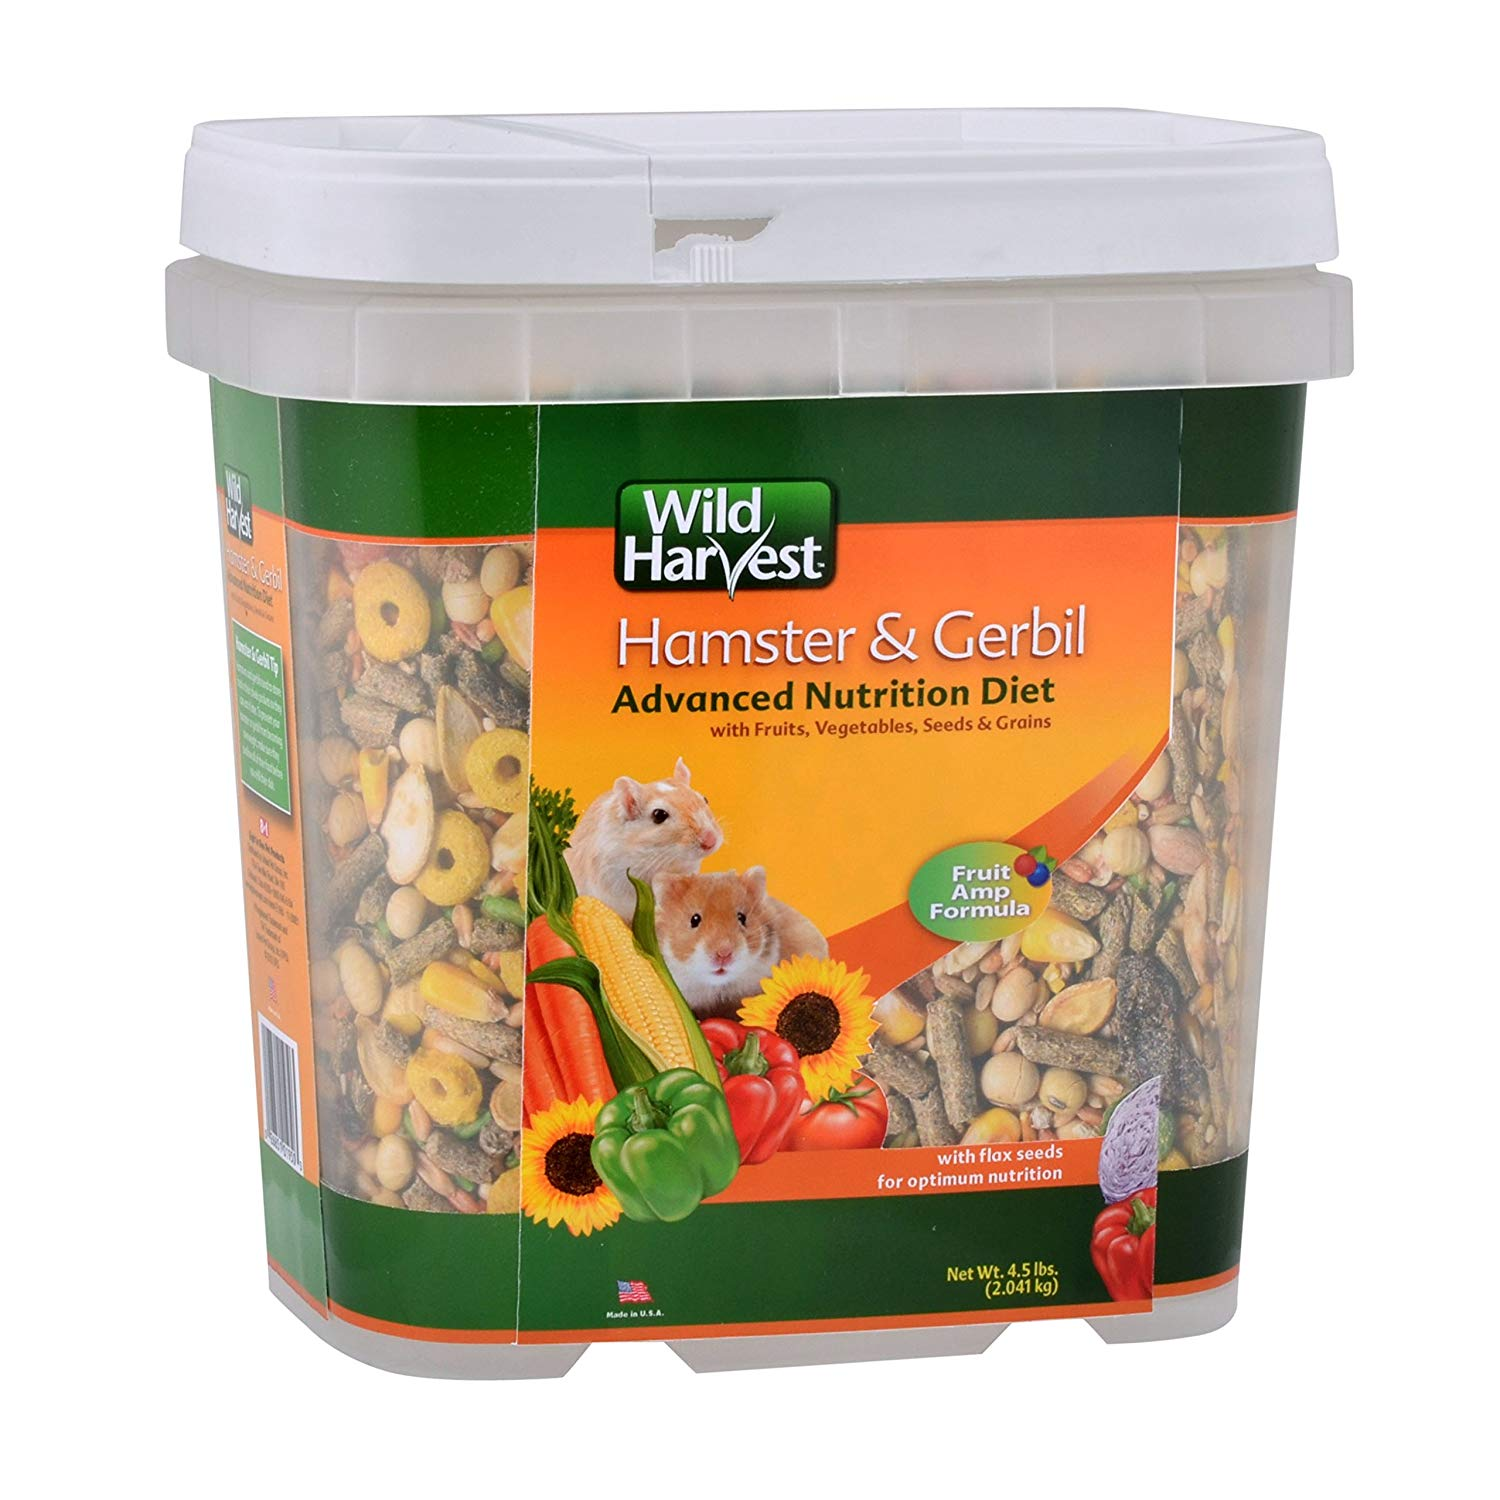 Wh-83543 Advanced Nutrition Diet For Hamsters Or Gerbils, 4.5-Pound, Advanced Nutrition Diets In Flip Top Containers By Wild Harvest